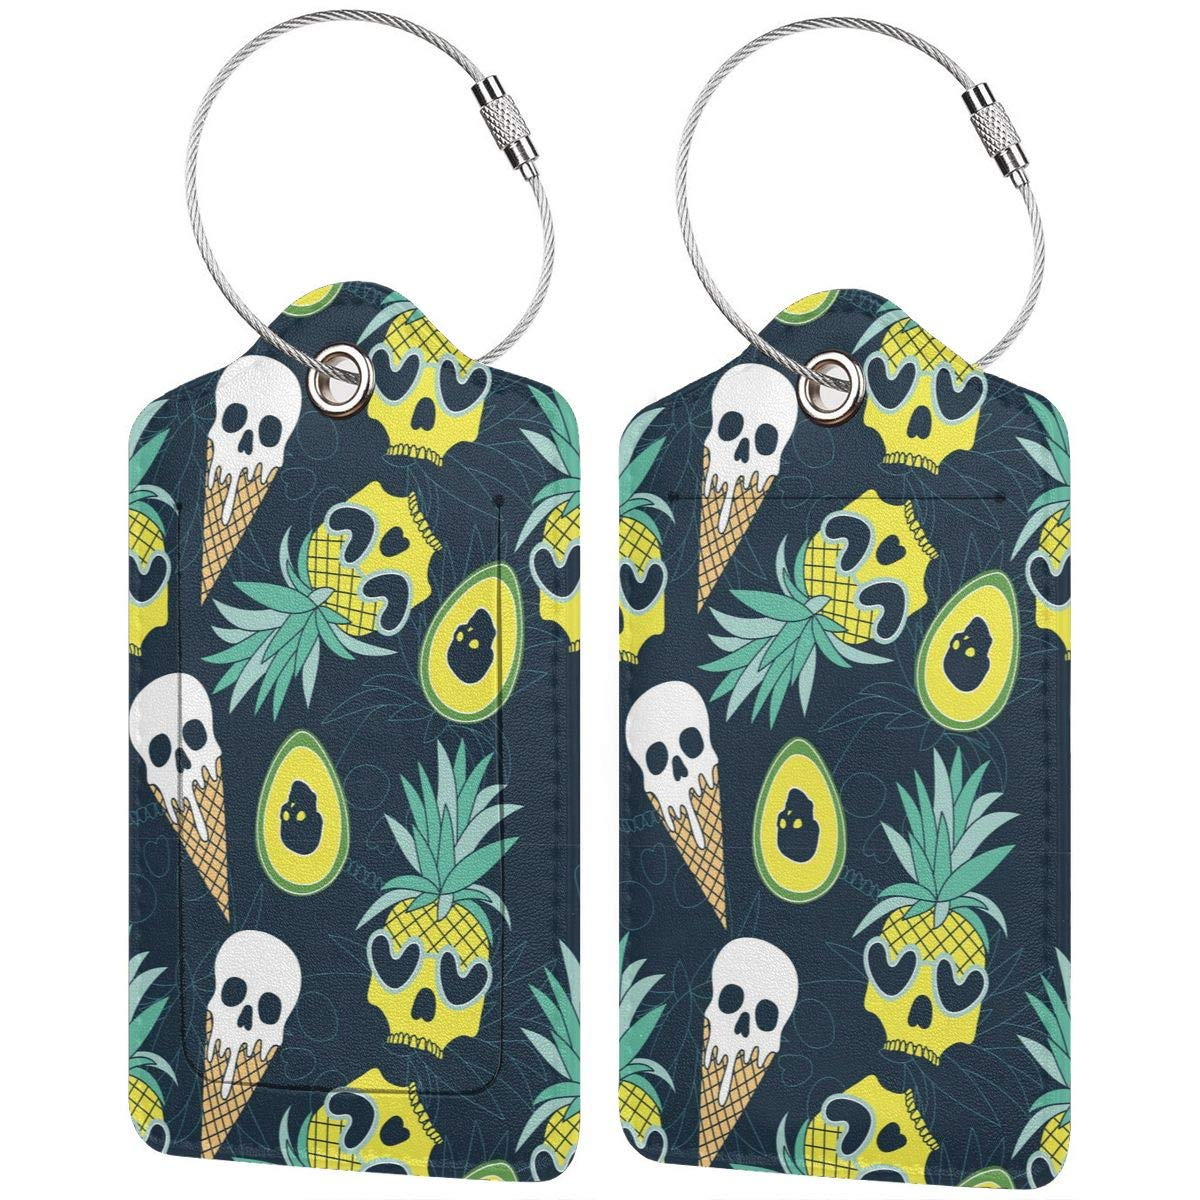 Lucaeat Fruit Repeat Pattern Luggage Tag PU Leather Bag Tag Travel Suitcases ID